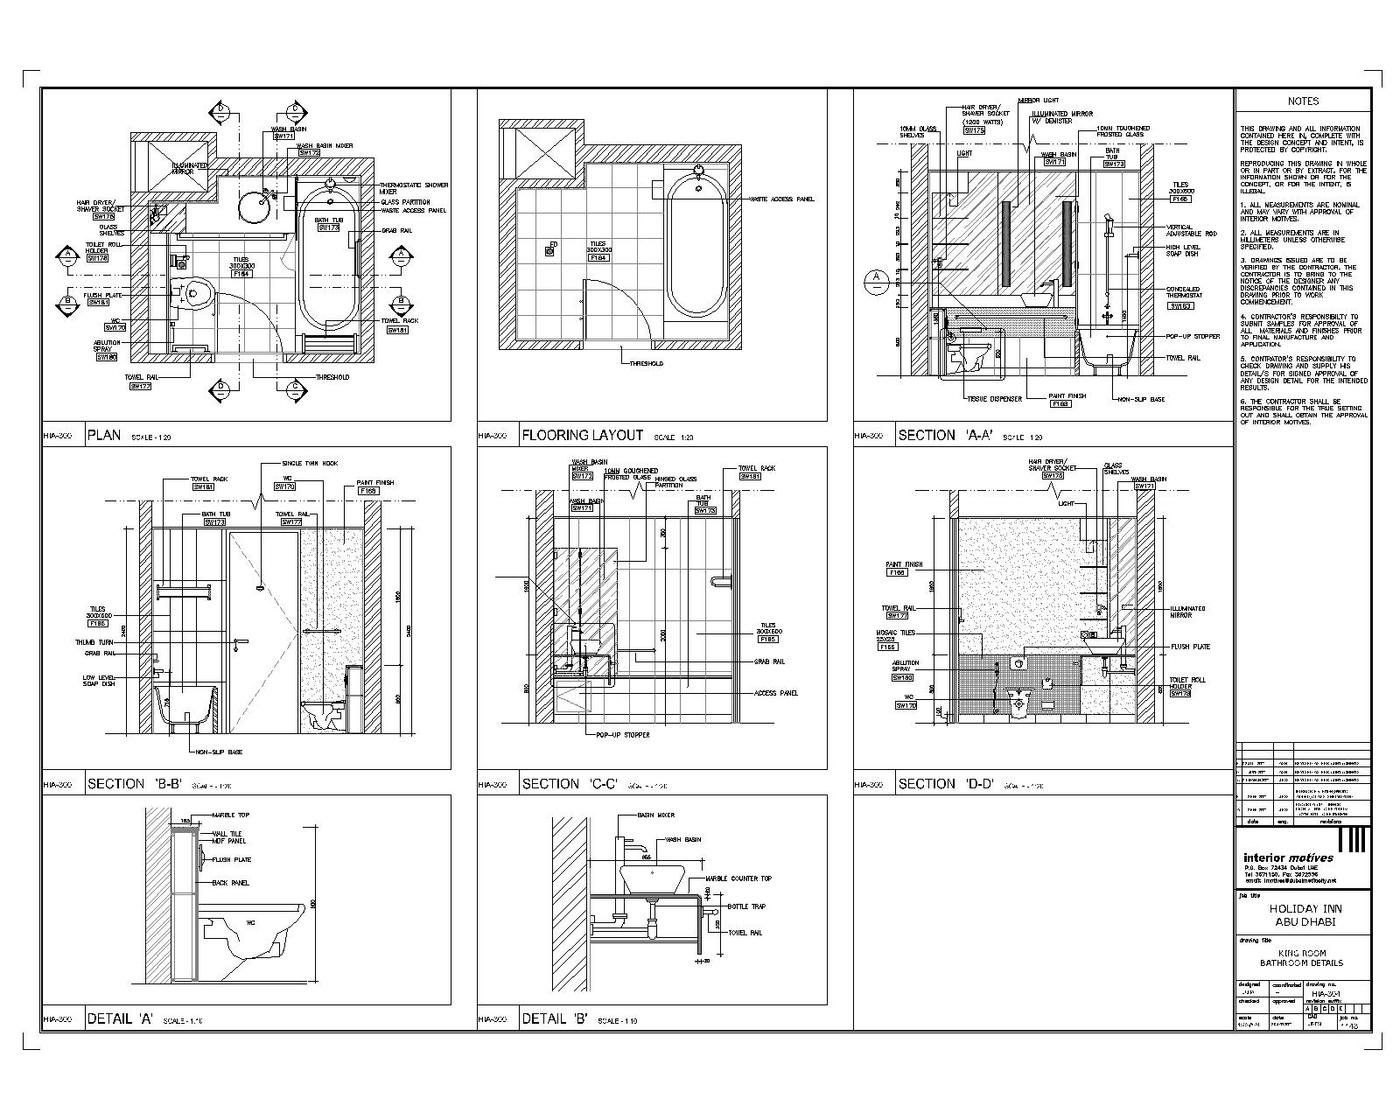 Porte De Garage Dwg Autocad Drawings Detail By Ashik Ahammed At Coroflot Decor